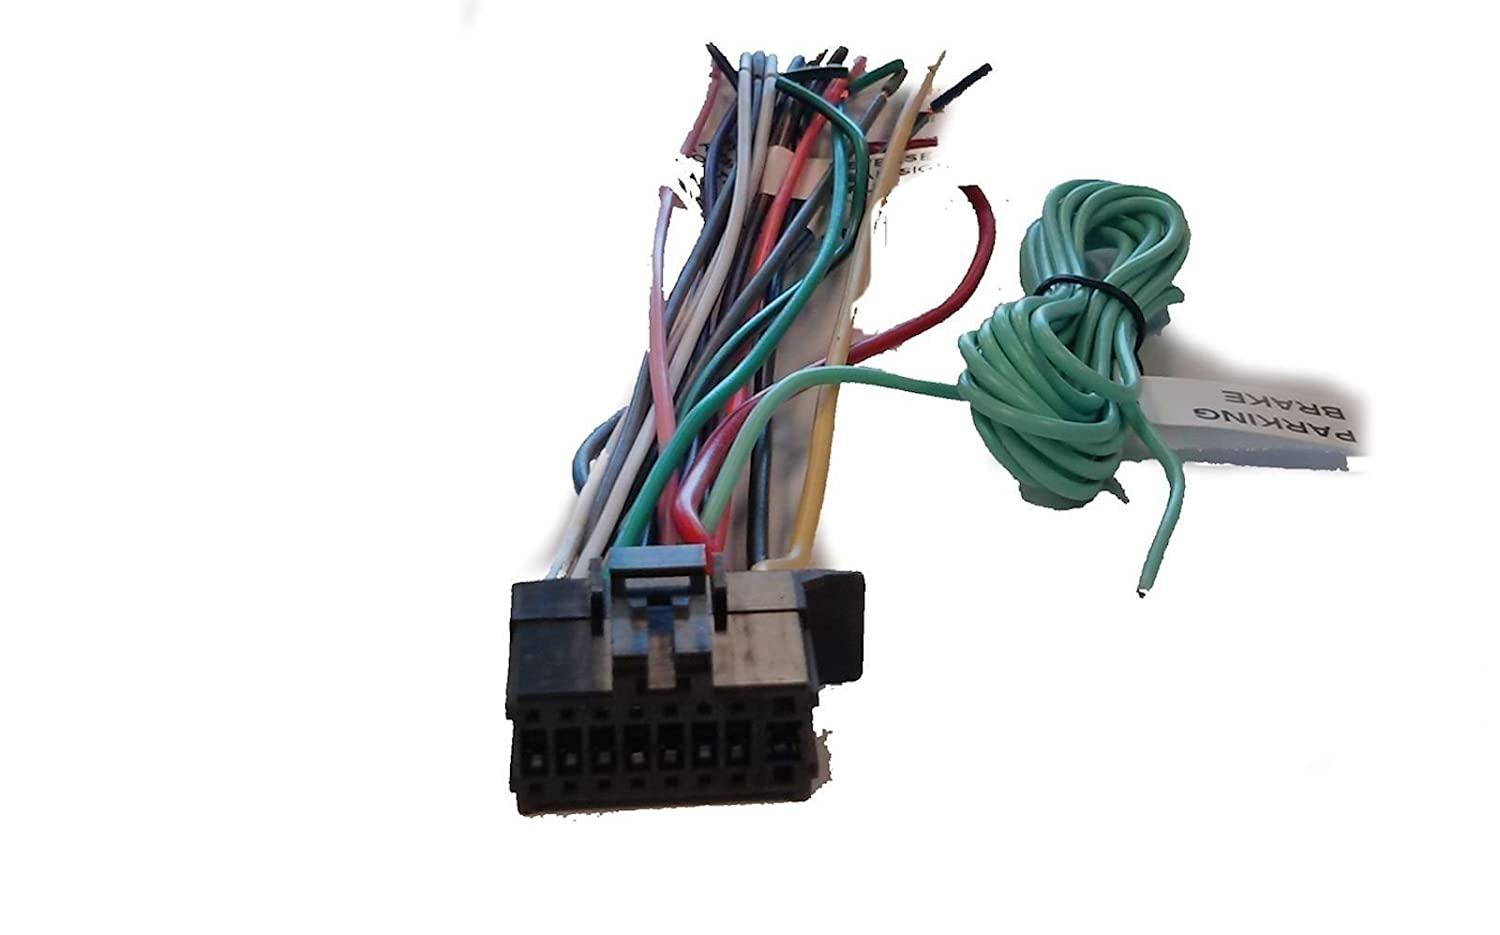 Amazon.com: Pioneer Wire Harness for AVH-4100NEX AVH4100NEX AVIC-6100NEX  AVIC6100NEX AVIC-8100NEX AVIC8100NEX: Car Electronics